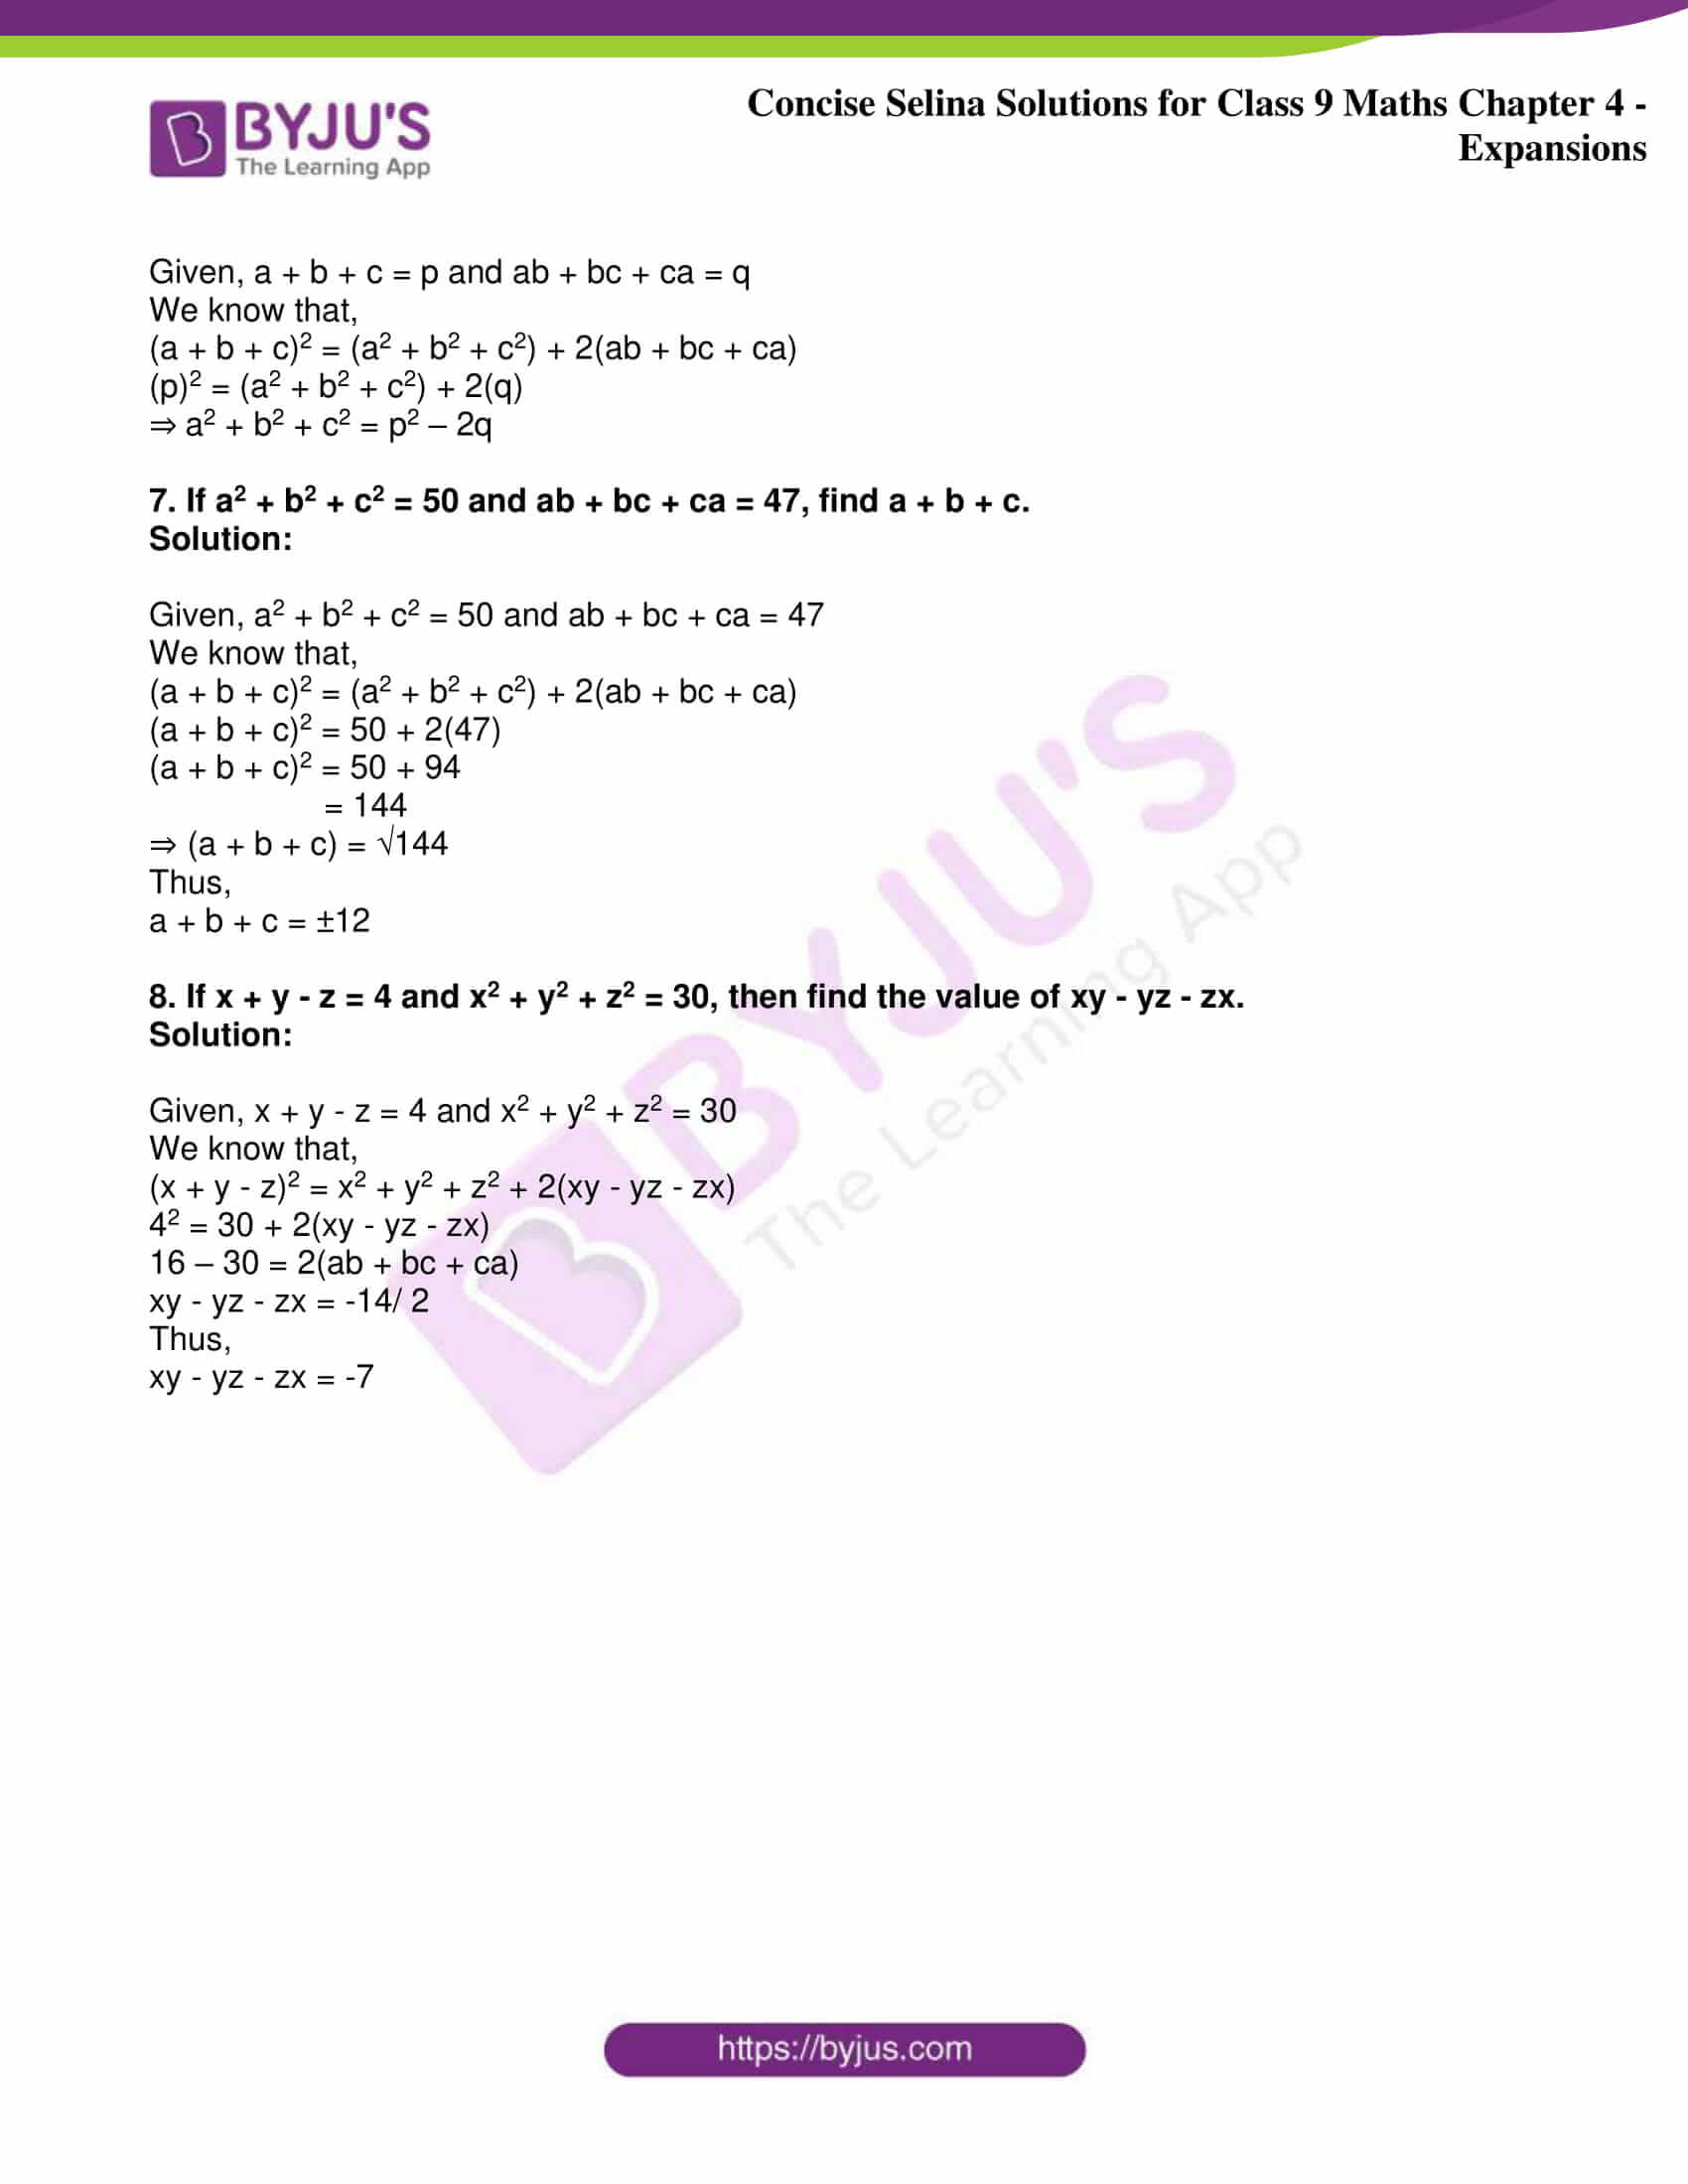 icse class 9 maths may10 selina solutions chapter 4 expansions 20